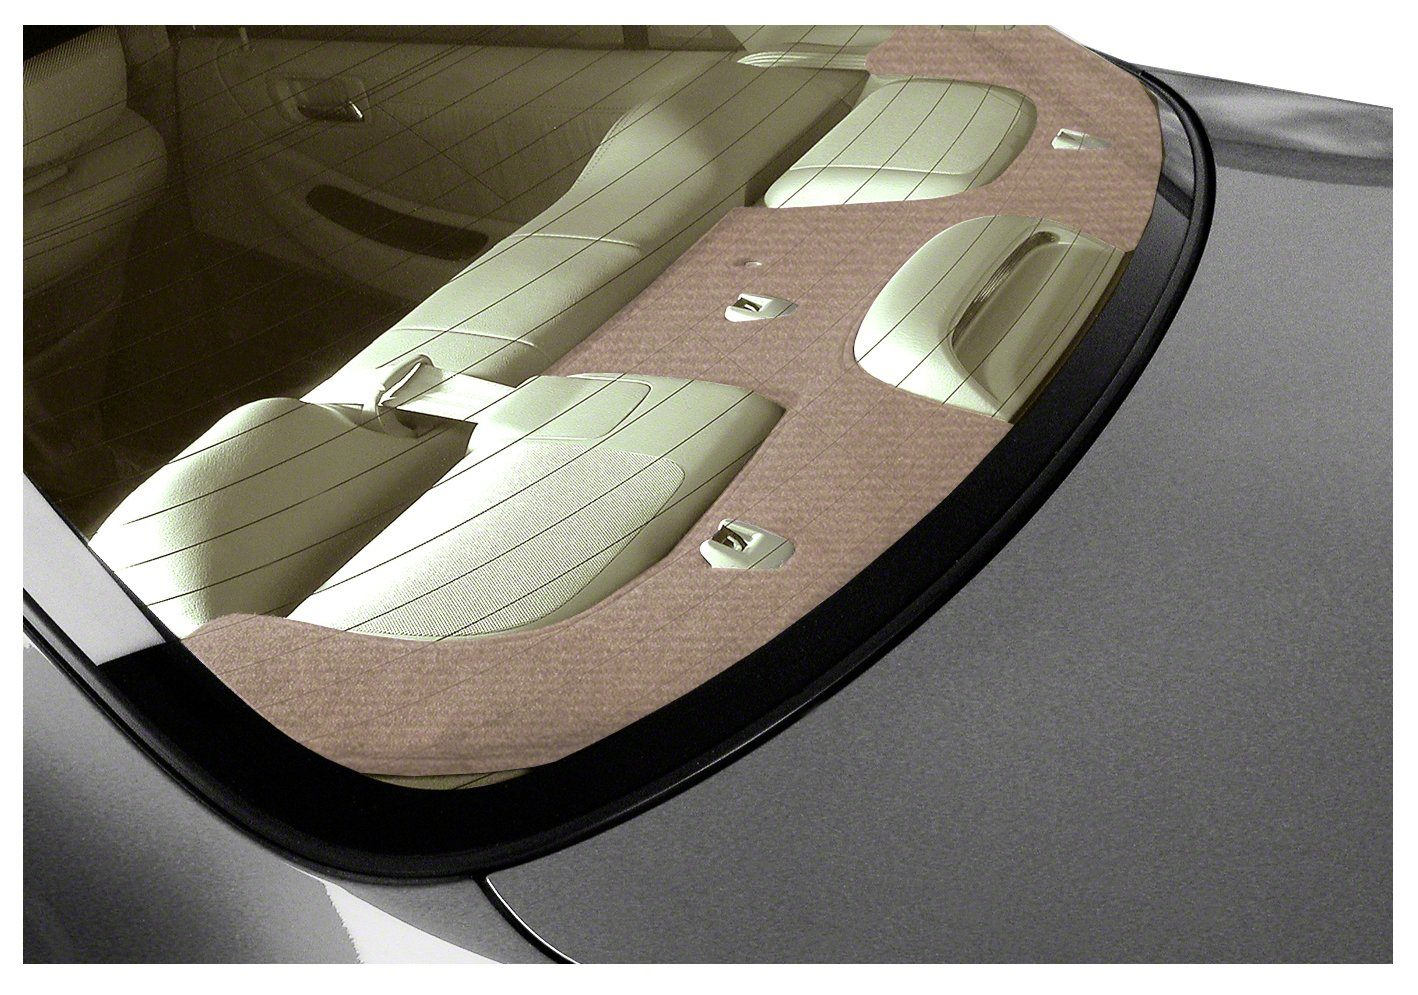 Coverking Custom Fit Dashcovers for Select Honda Accord Models - Velour (Beige) by Coverking (Image #1)